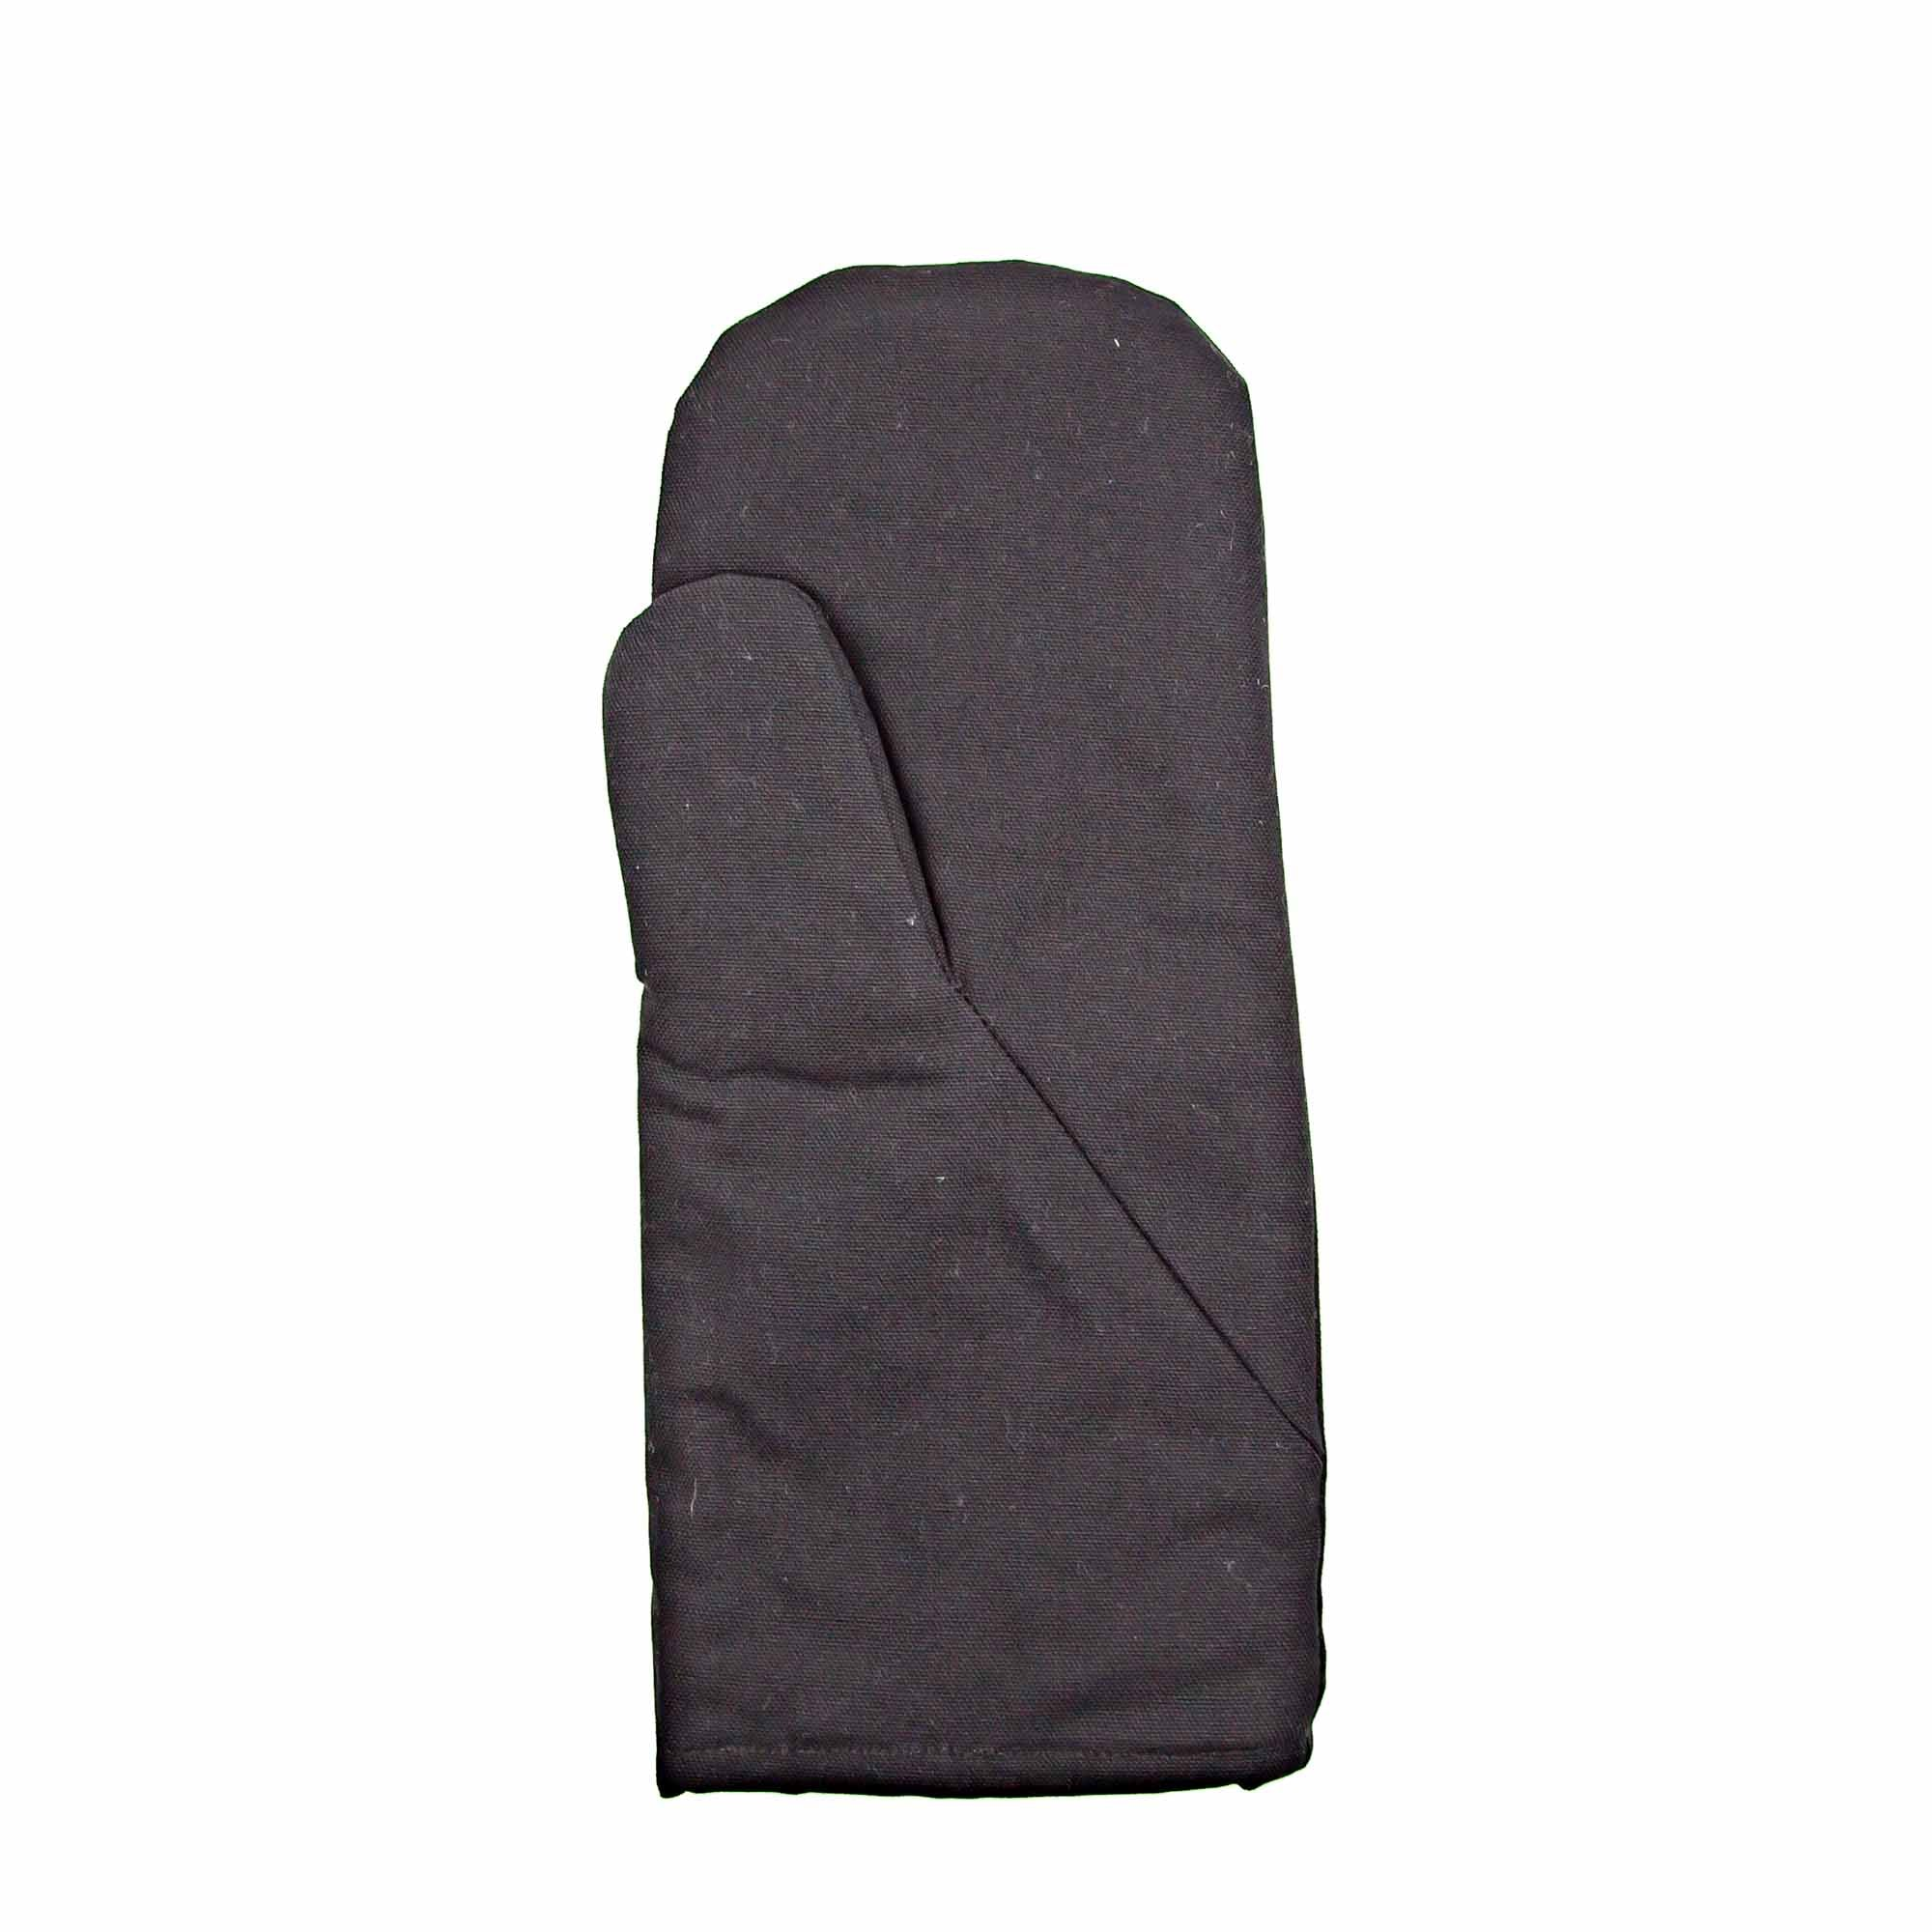 The Organic Company Oven Mitts Pair - Large - Mortise And Tenon